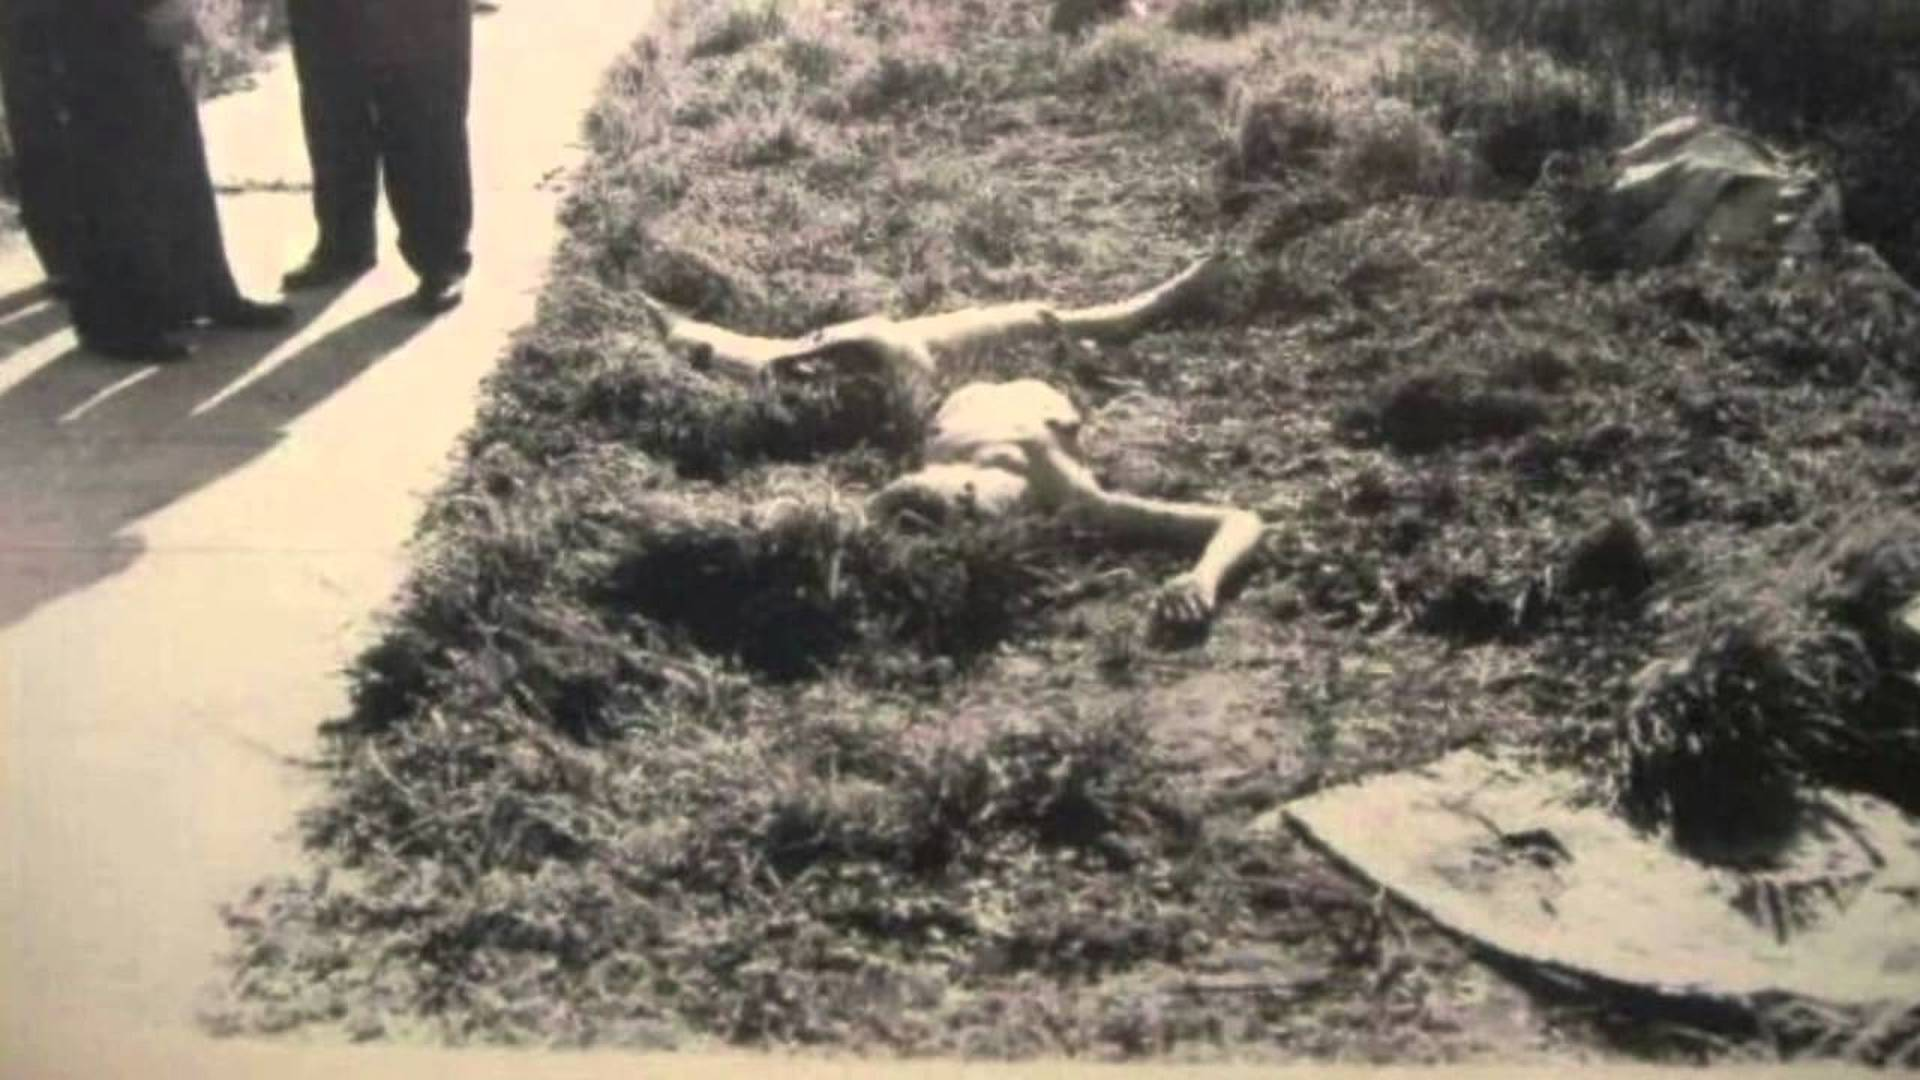 The murder scene of Elizabeth Short.